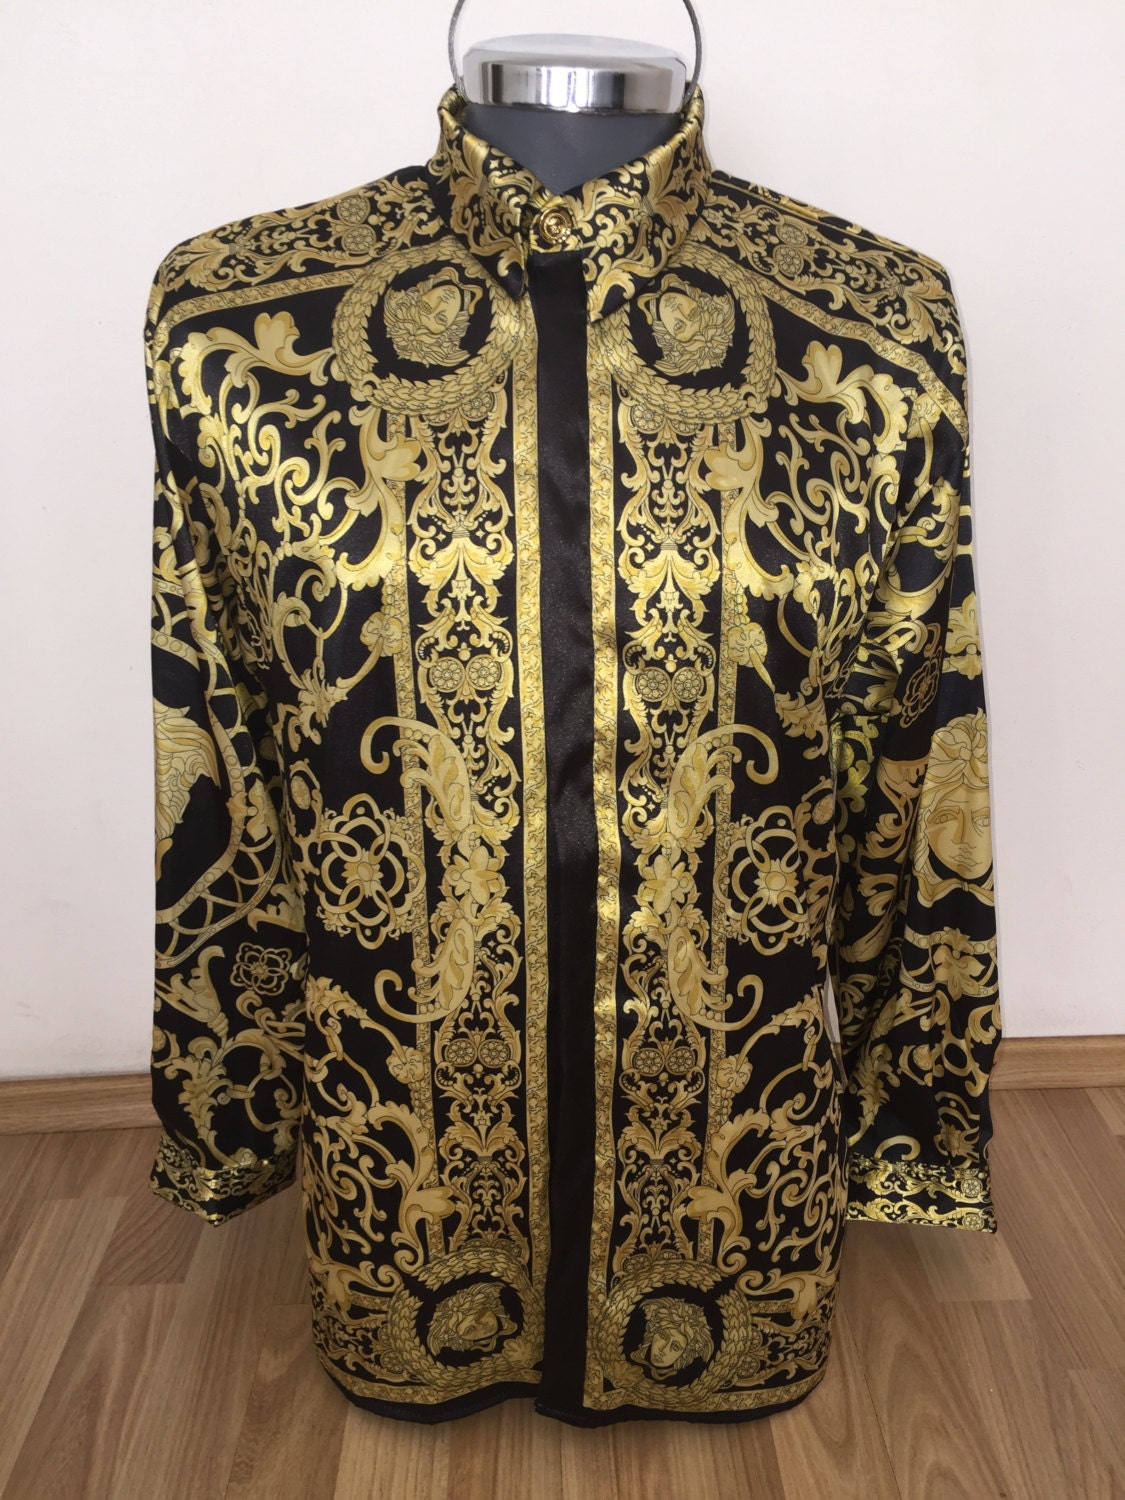 gianni versace silk shirt hermes silk shirt by. Black Bedroom Furniture Sets. Home Design Ideas